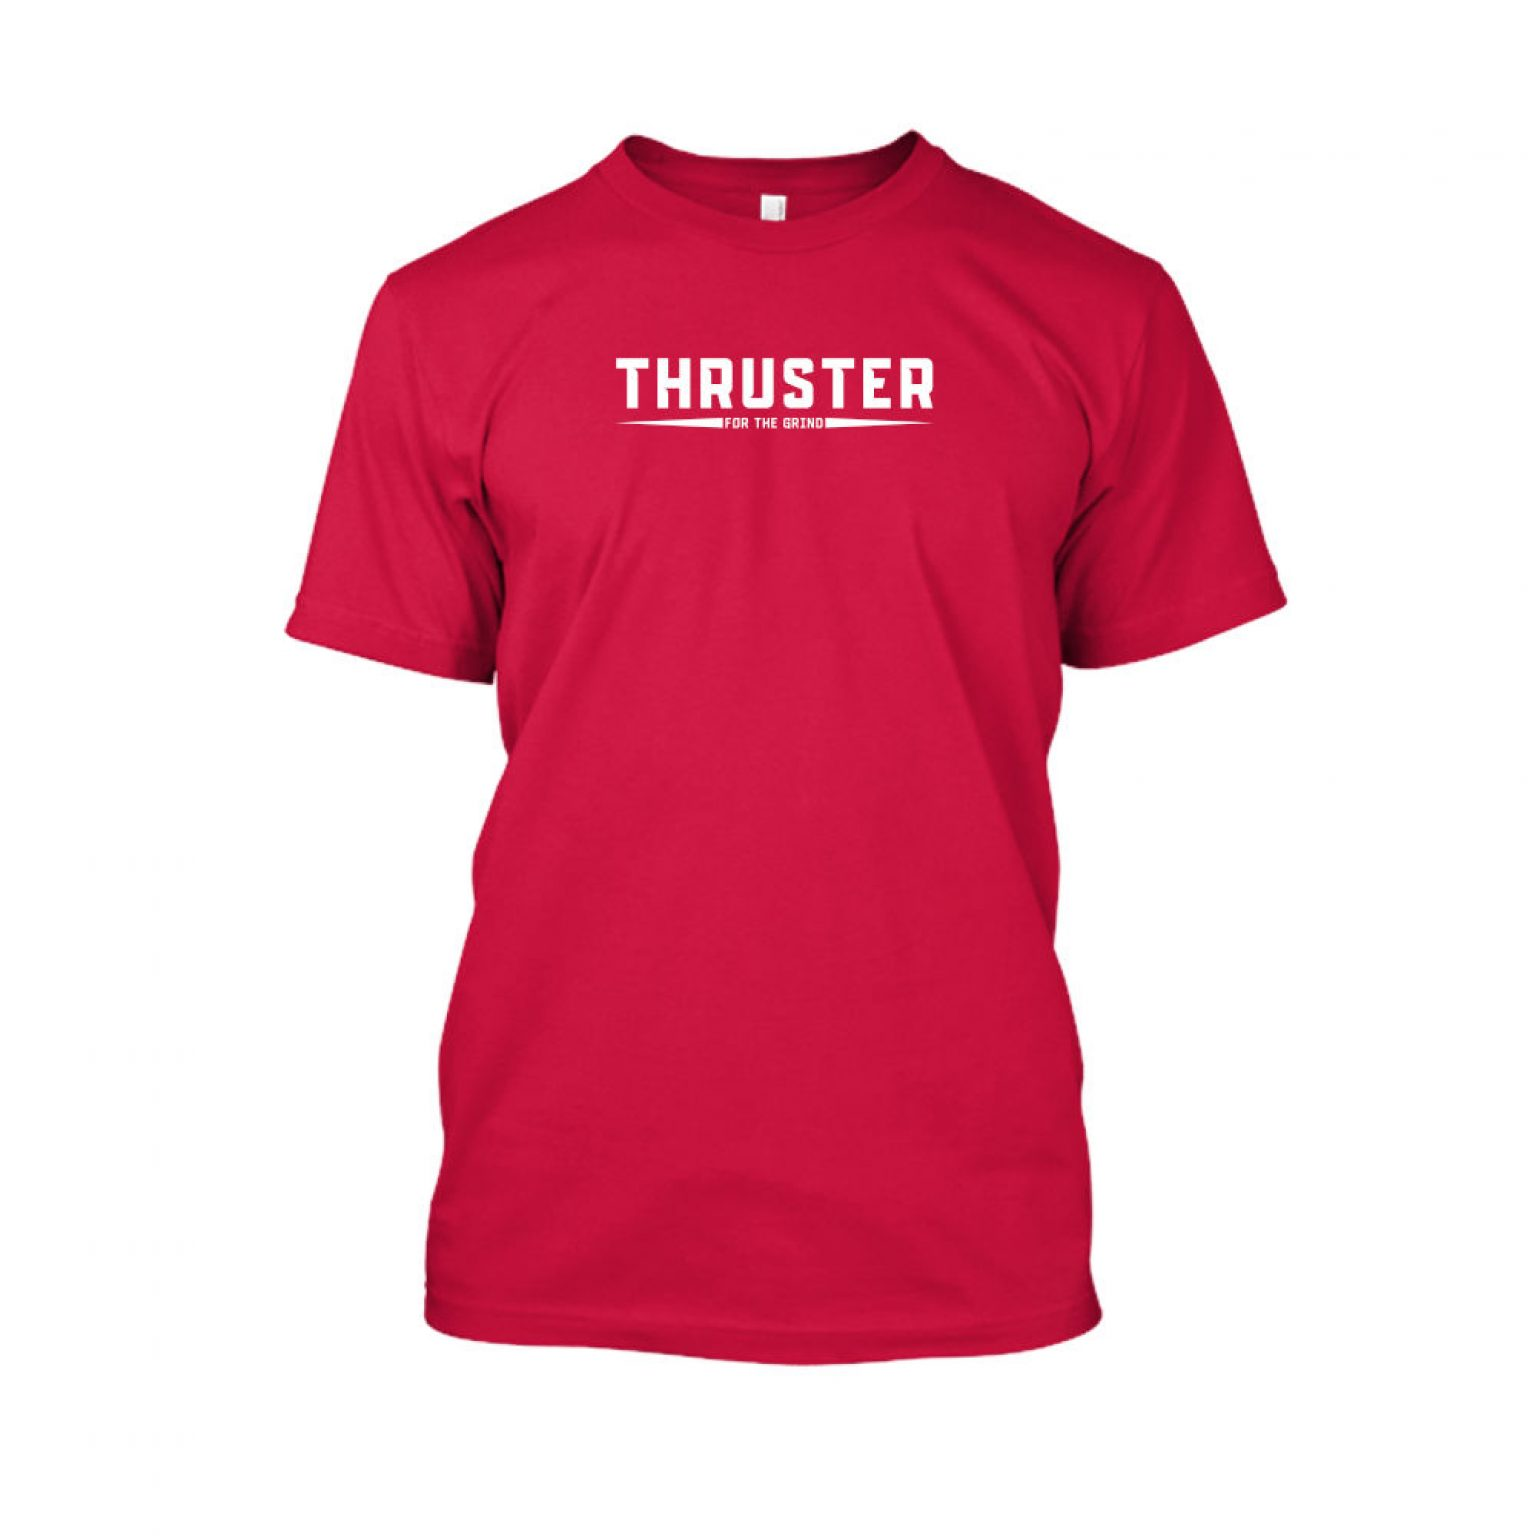 Thruster shirt herren red